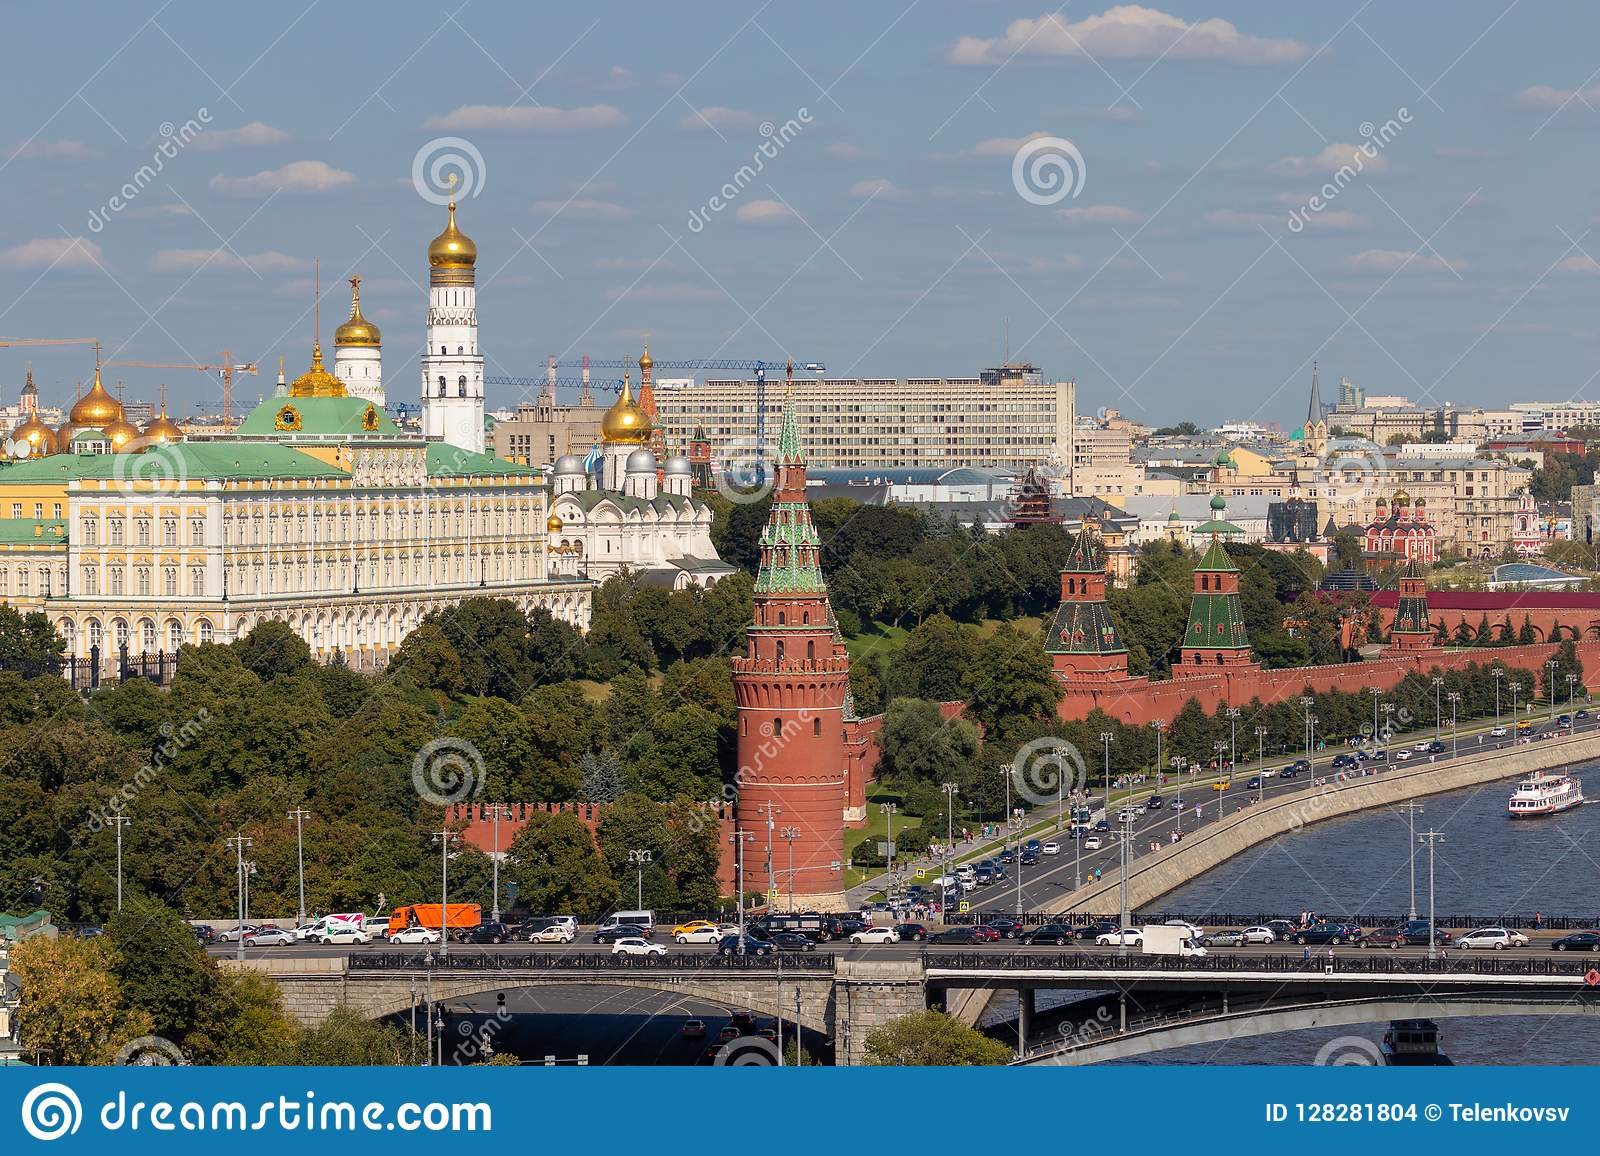 Moscow Kremlin with towers. Assumption Cathedral, in the Kremlin. Grand Kremlin Palace.